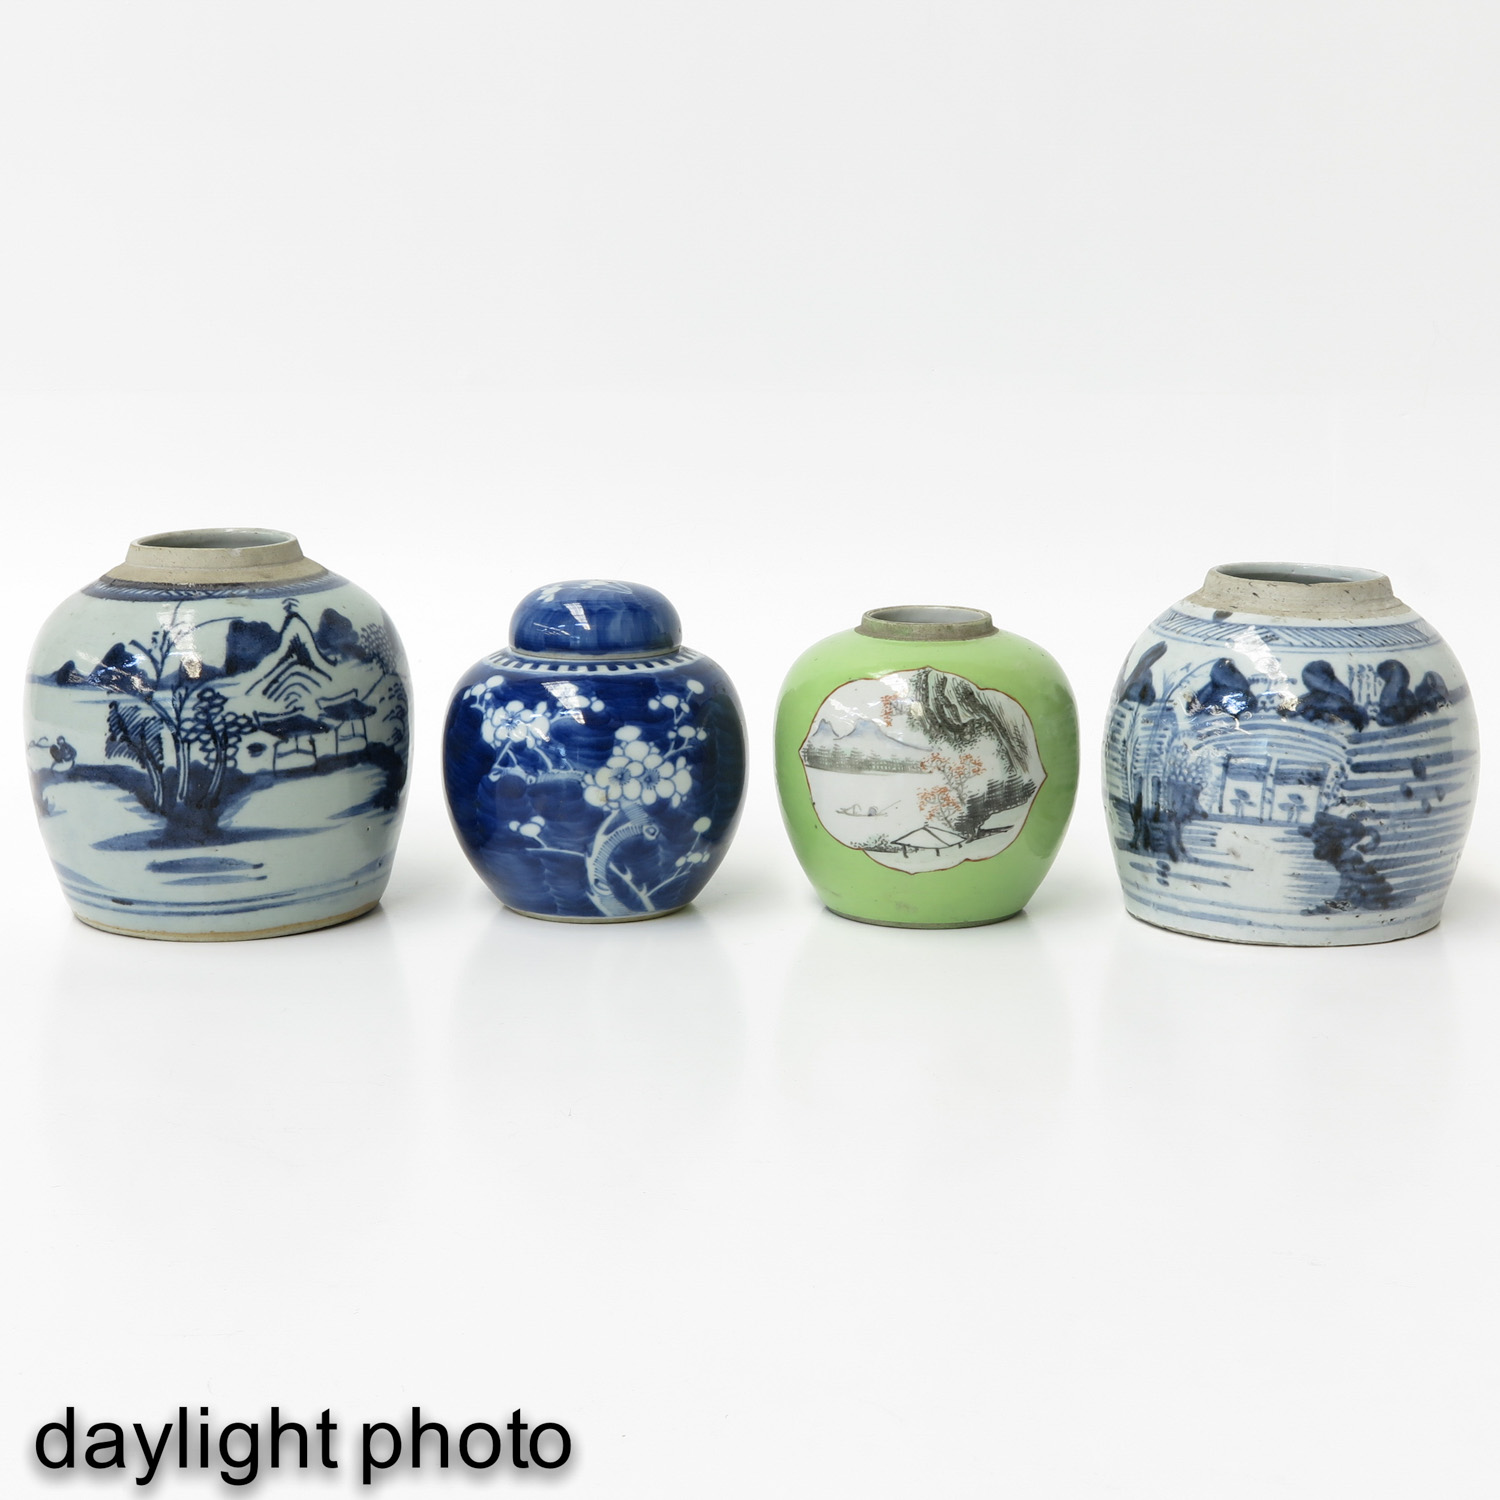 A Collection of 4 Ginger Jars - Image 7 of 9